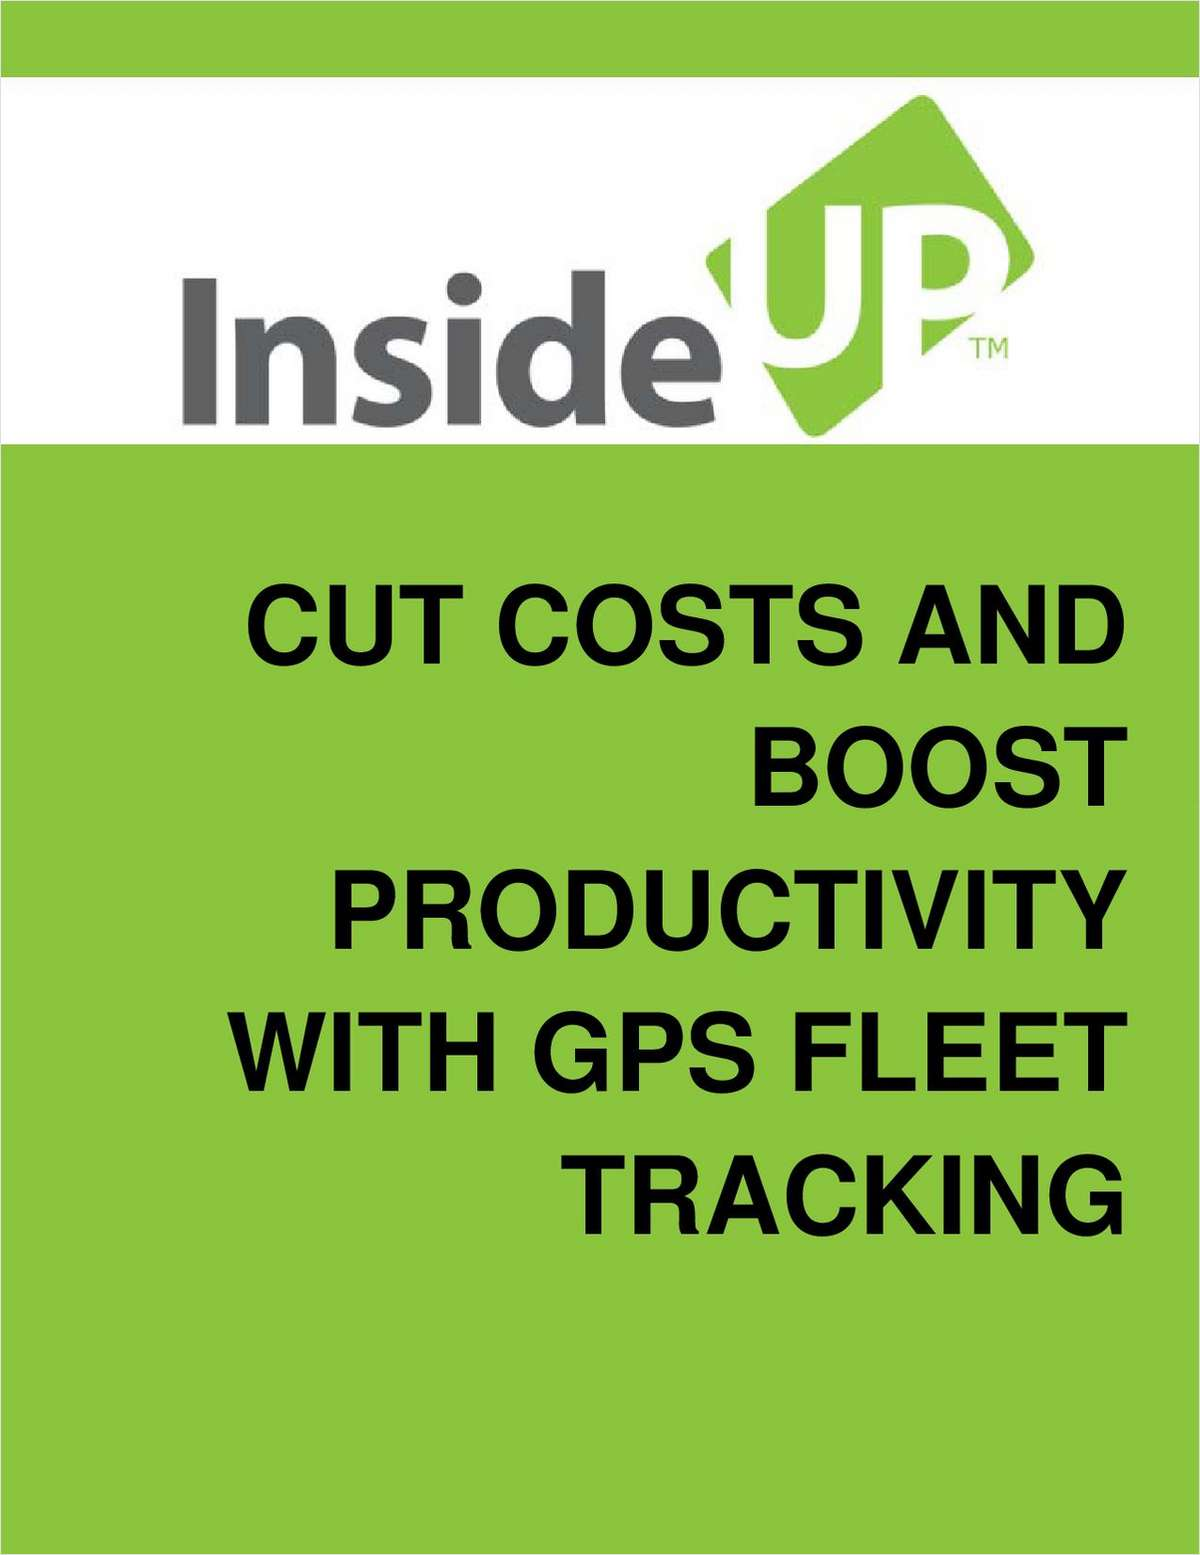 How to Cut Fleet Operations Costs and Boost Productivity With GPS Tracking